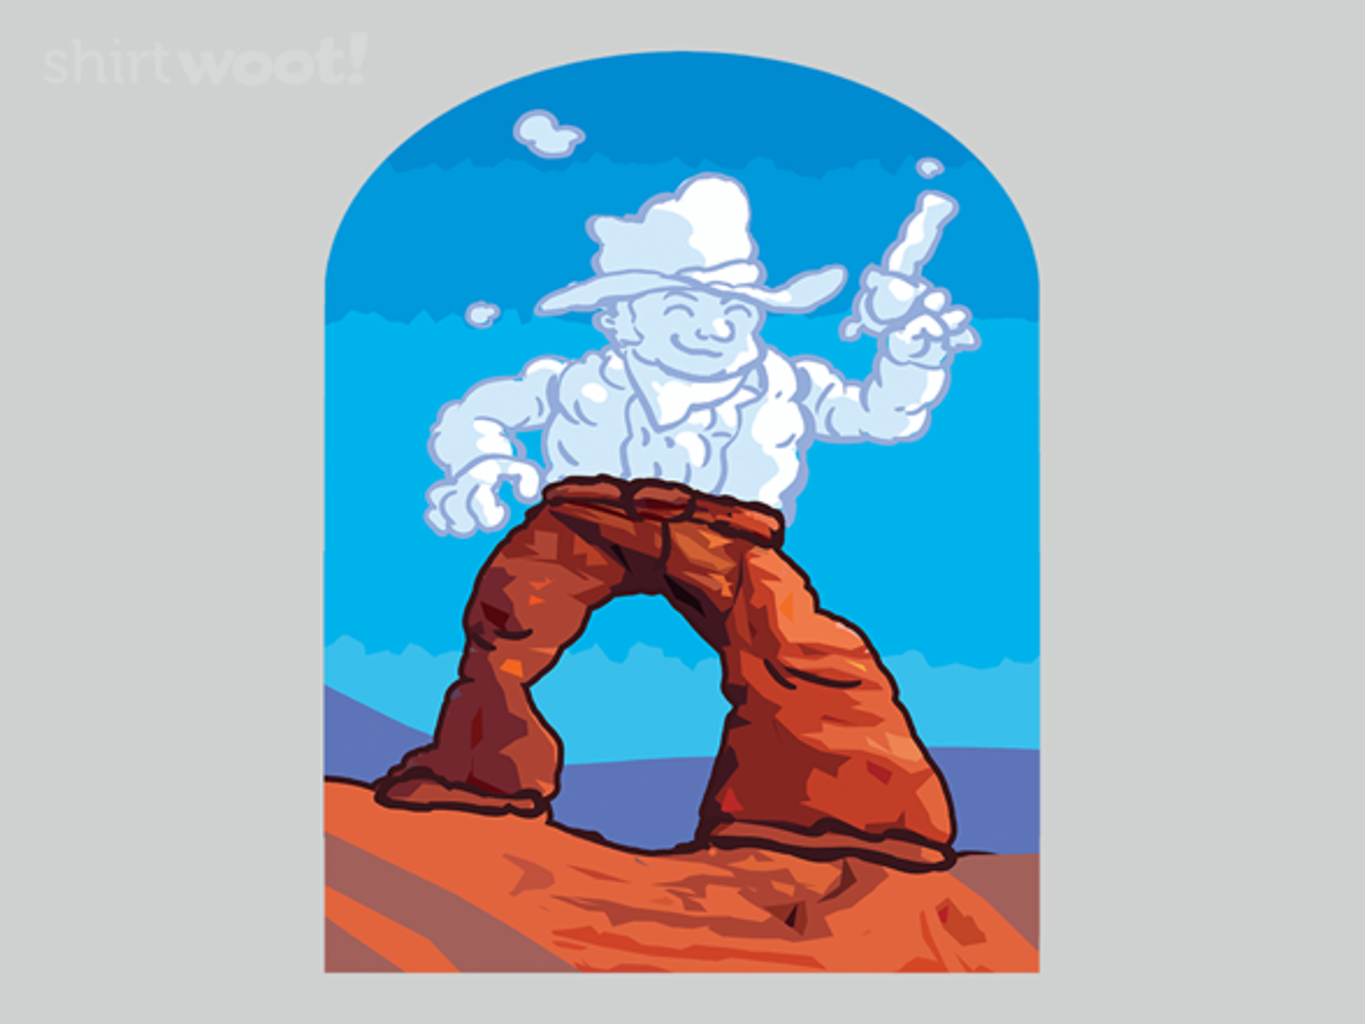 Woot!: Cloud Cowboy of Arches - $15.00 + Free shipping